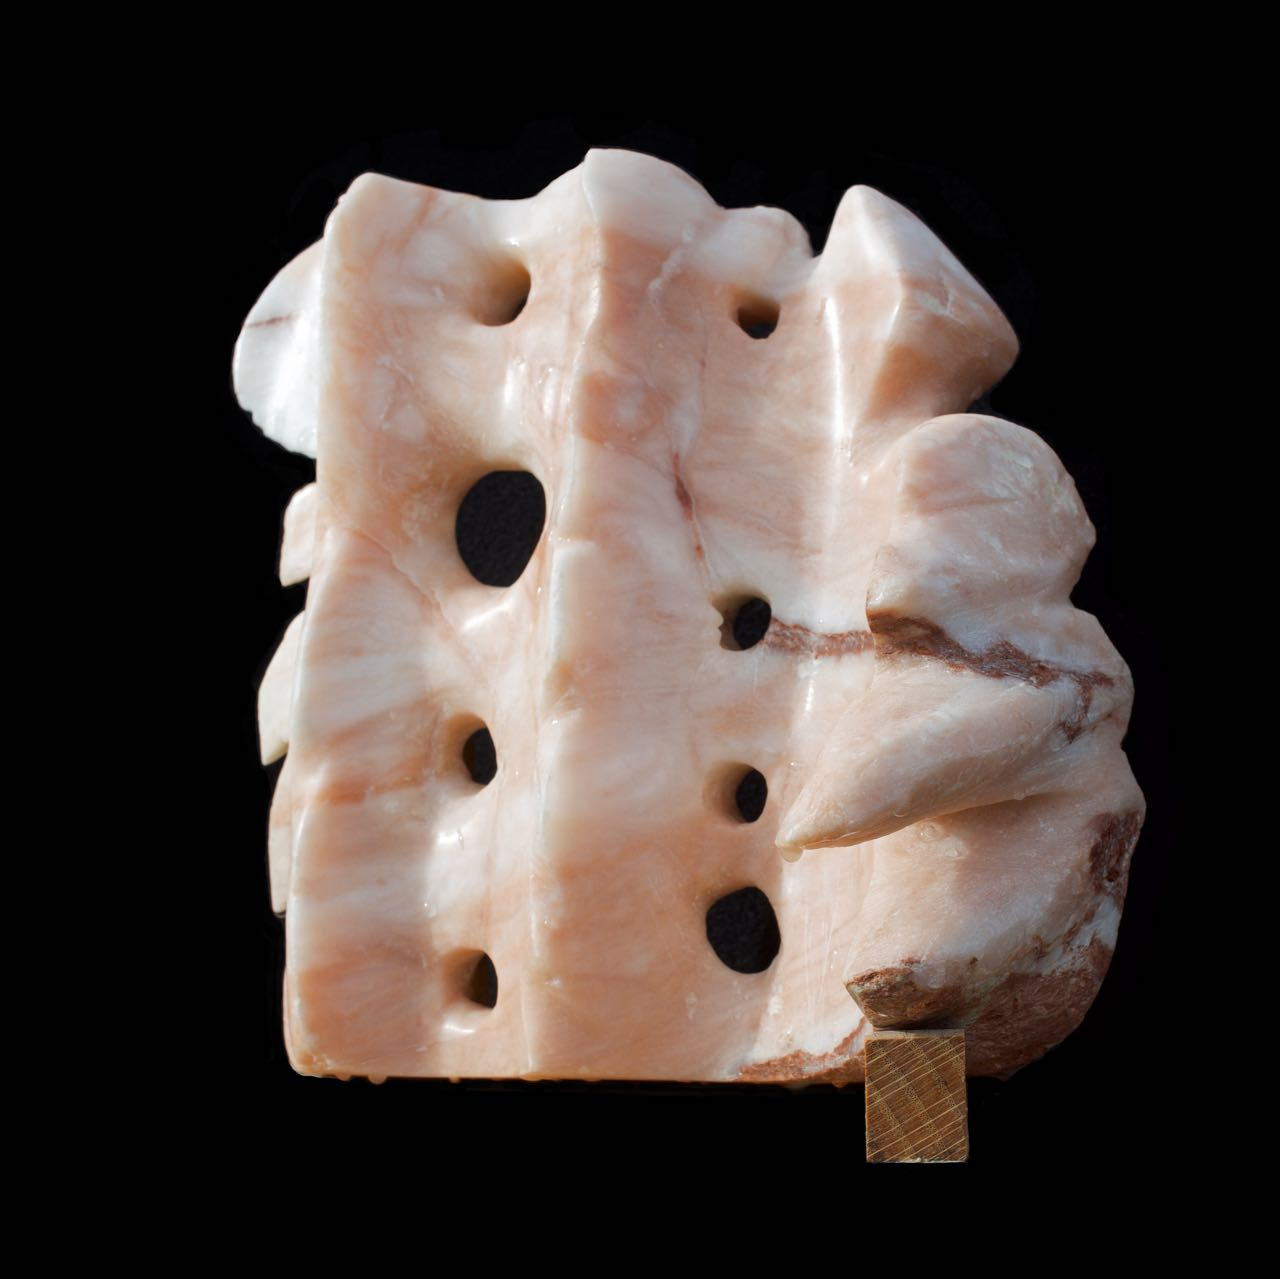 An alabaster sculpture with flowing and spiky elements